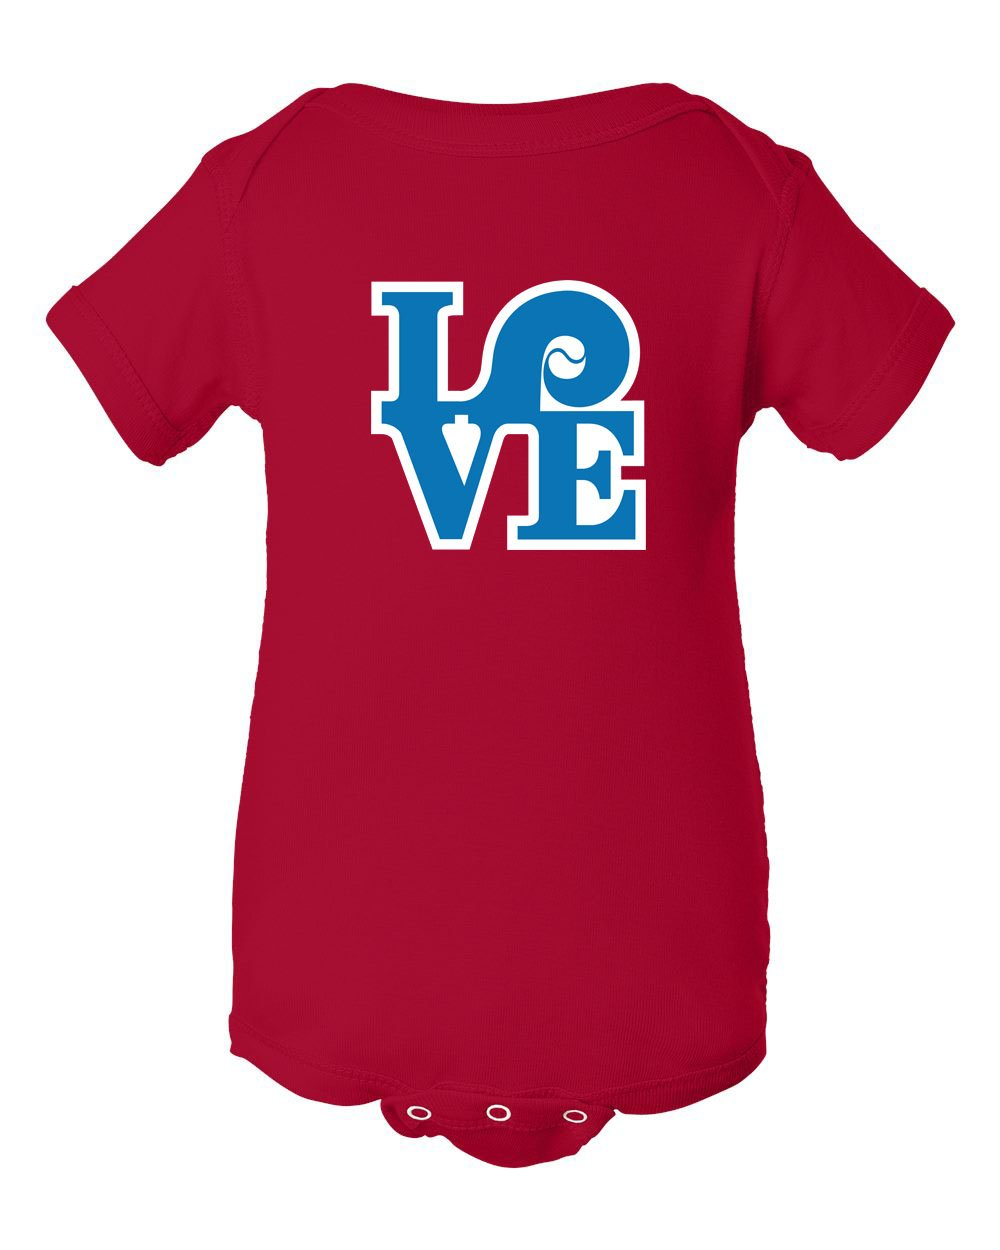 Love Red INFANT Onesie